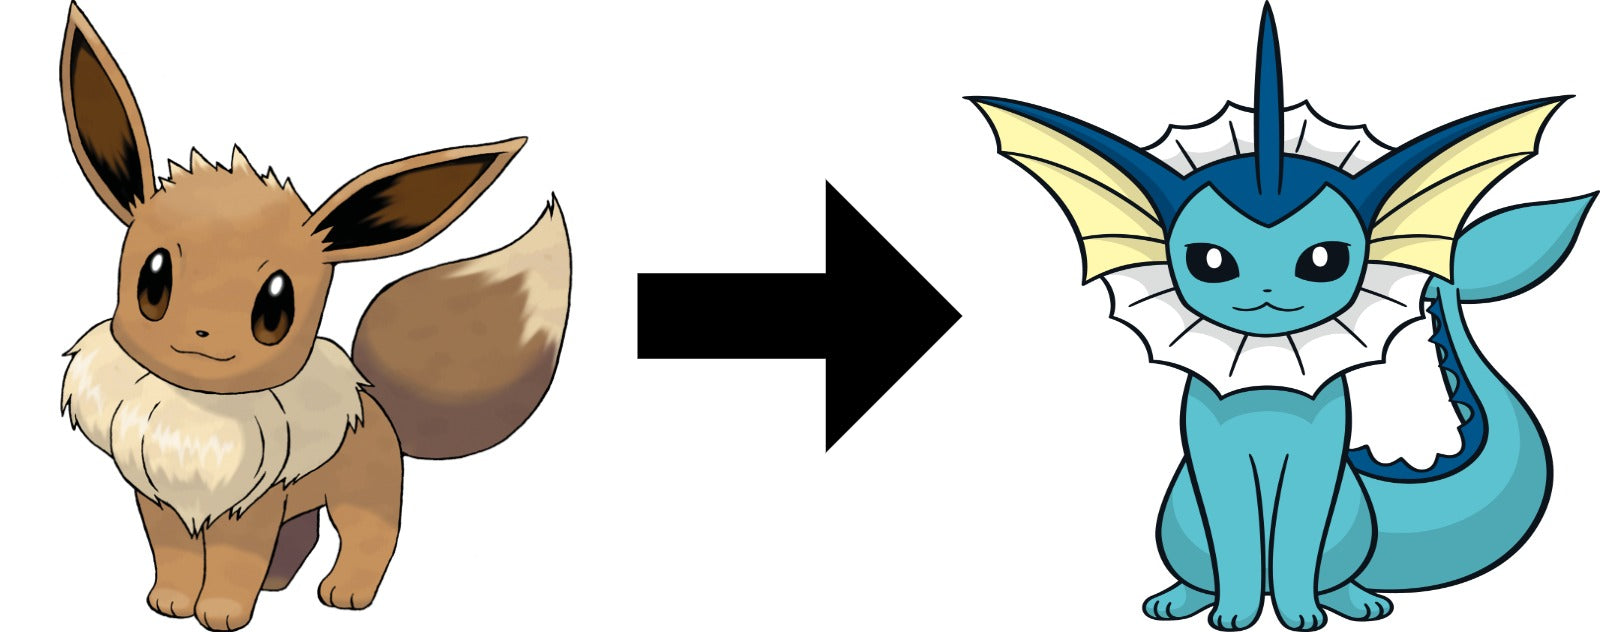 How to Evolve Eevee into Vaporeon in pokemon sword and shield